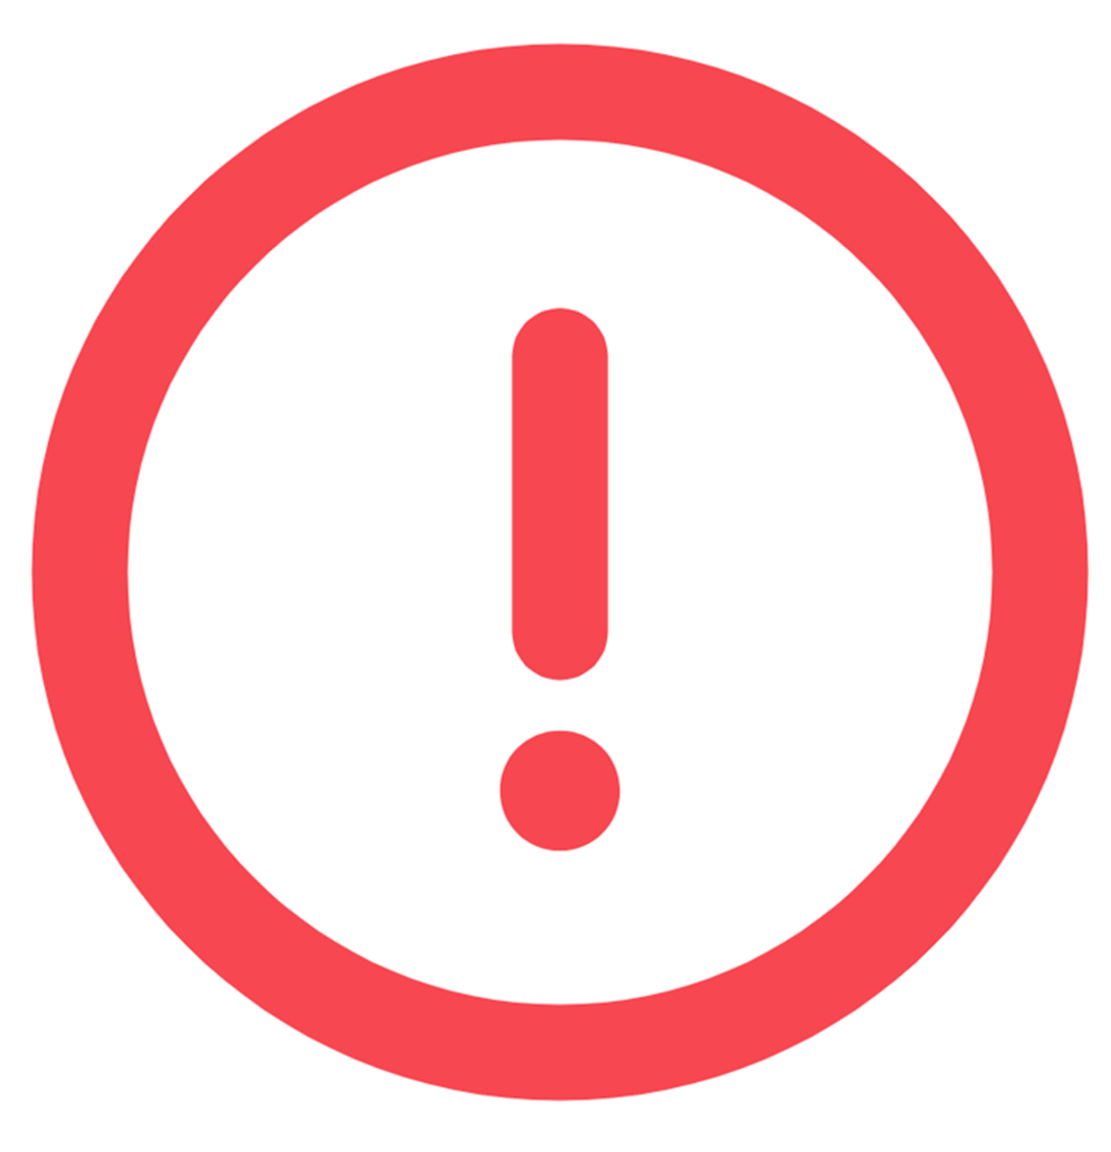 Alerts, Online Banking & Known Product Issues